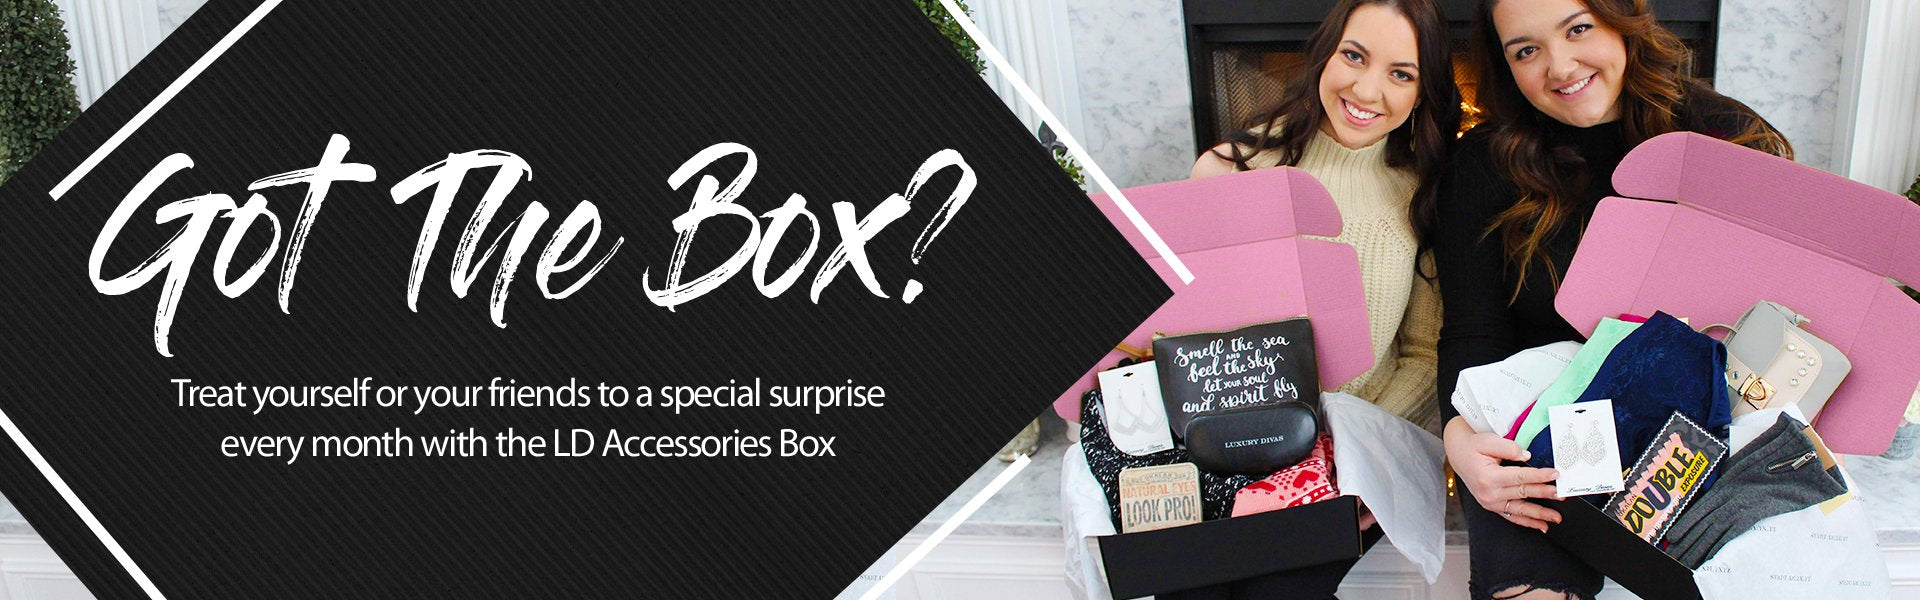 Give the best gift ever this holiday season by gifting a monthly subscription to the LD Fashion Accessories Box - Get 3 Months for $75